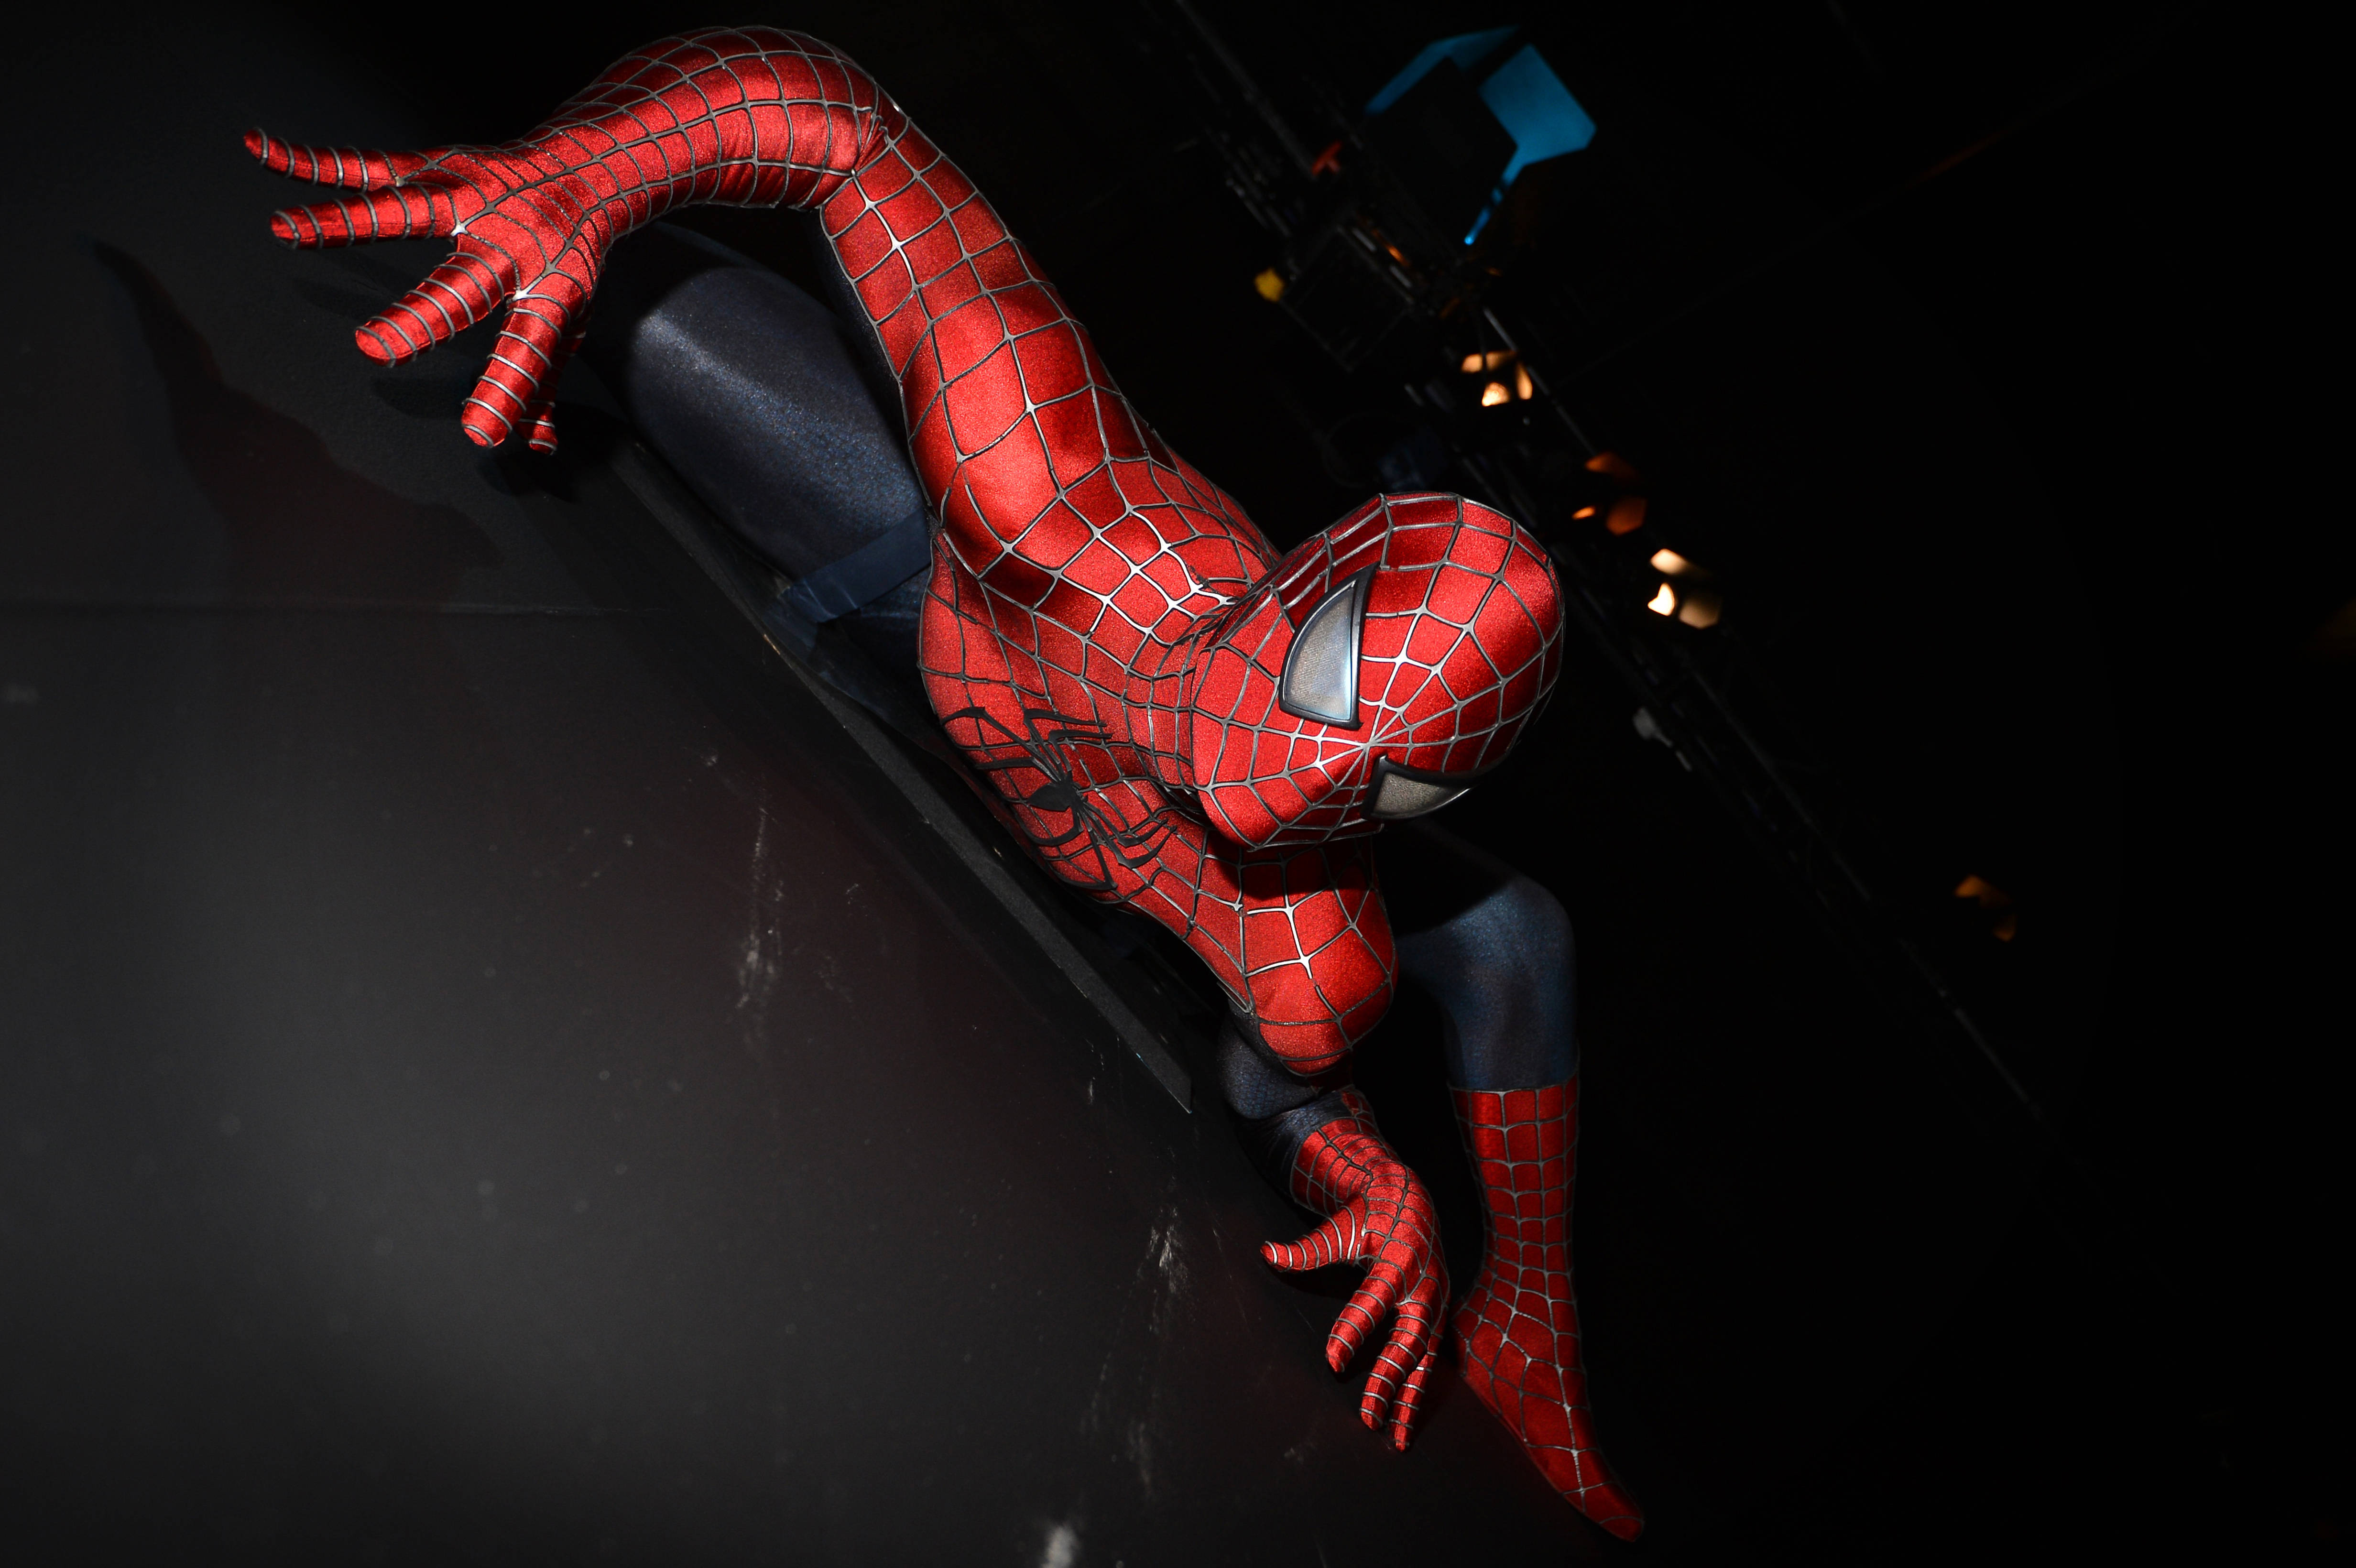 A costume worn by U.S. actor Tobey Maguire in the 2002 movie Spider-Man is displayed at the  Hollywood Costume  exhibition at the Victoria and Albert Museum in London on Oct. 17, 2012